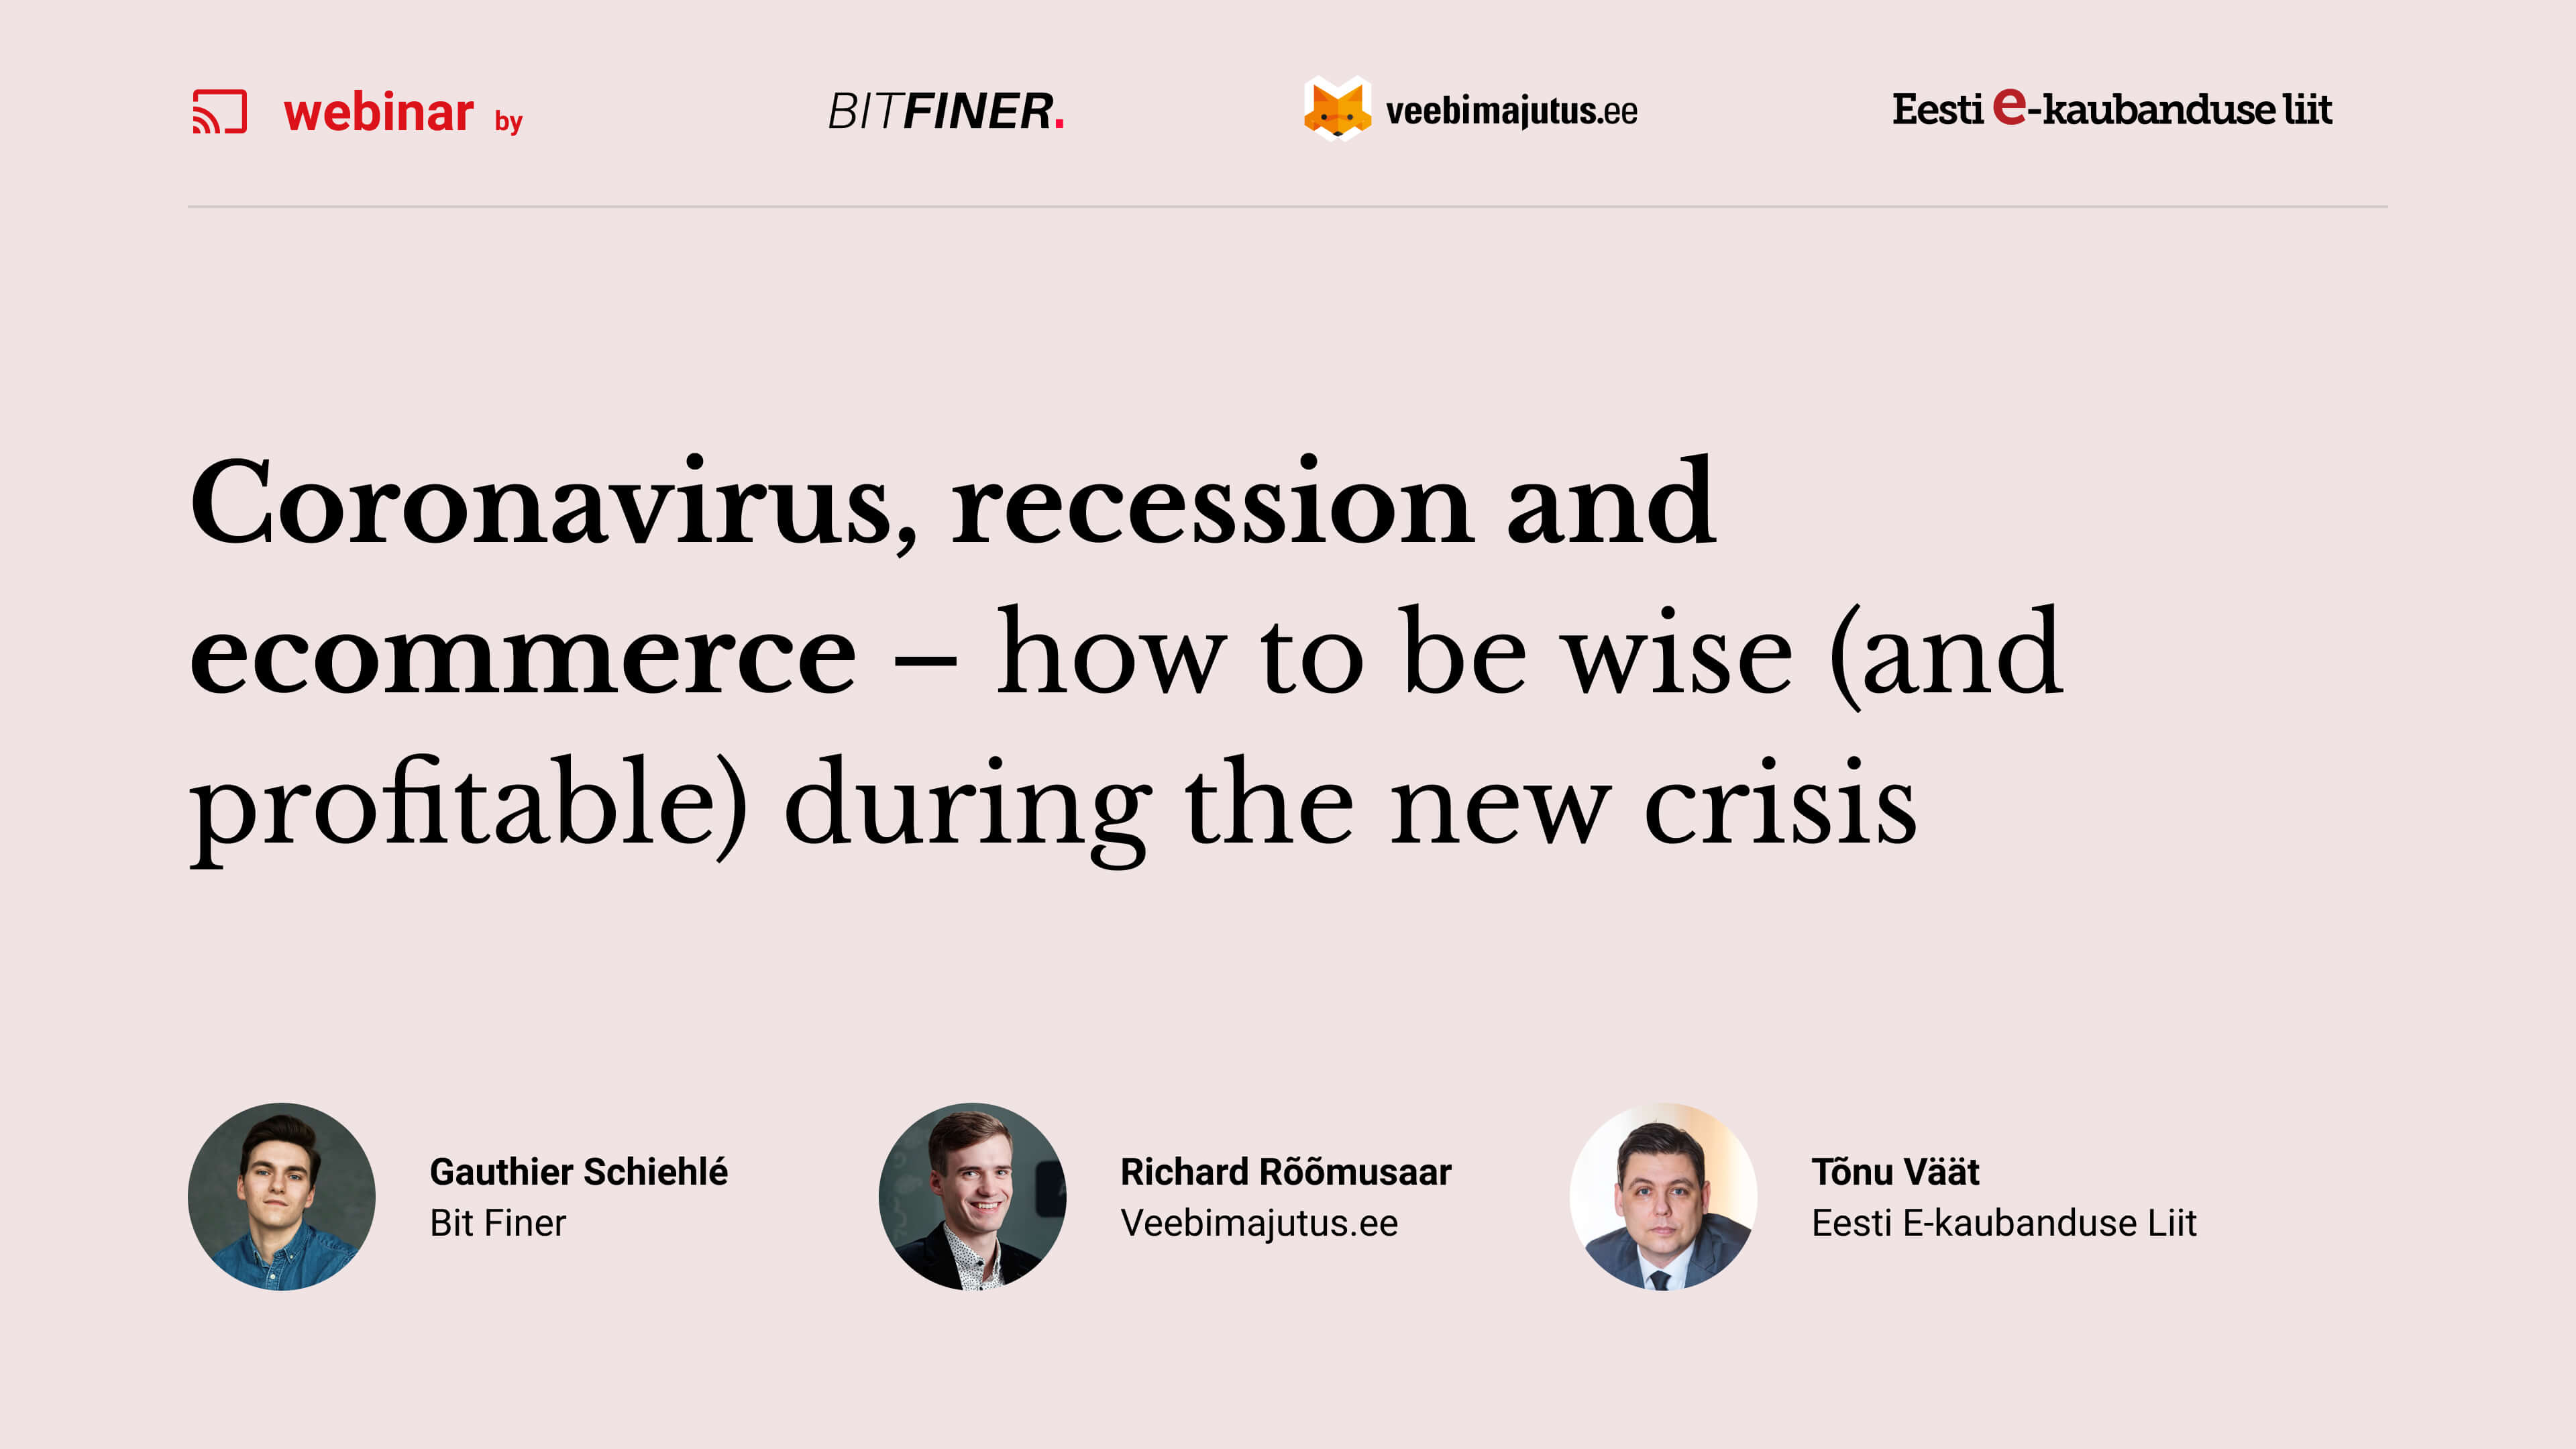 Webinar: Coronavirus, recession and ecommerce – how to be wise (and profitable) during the new crisis